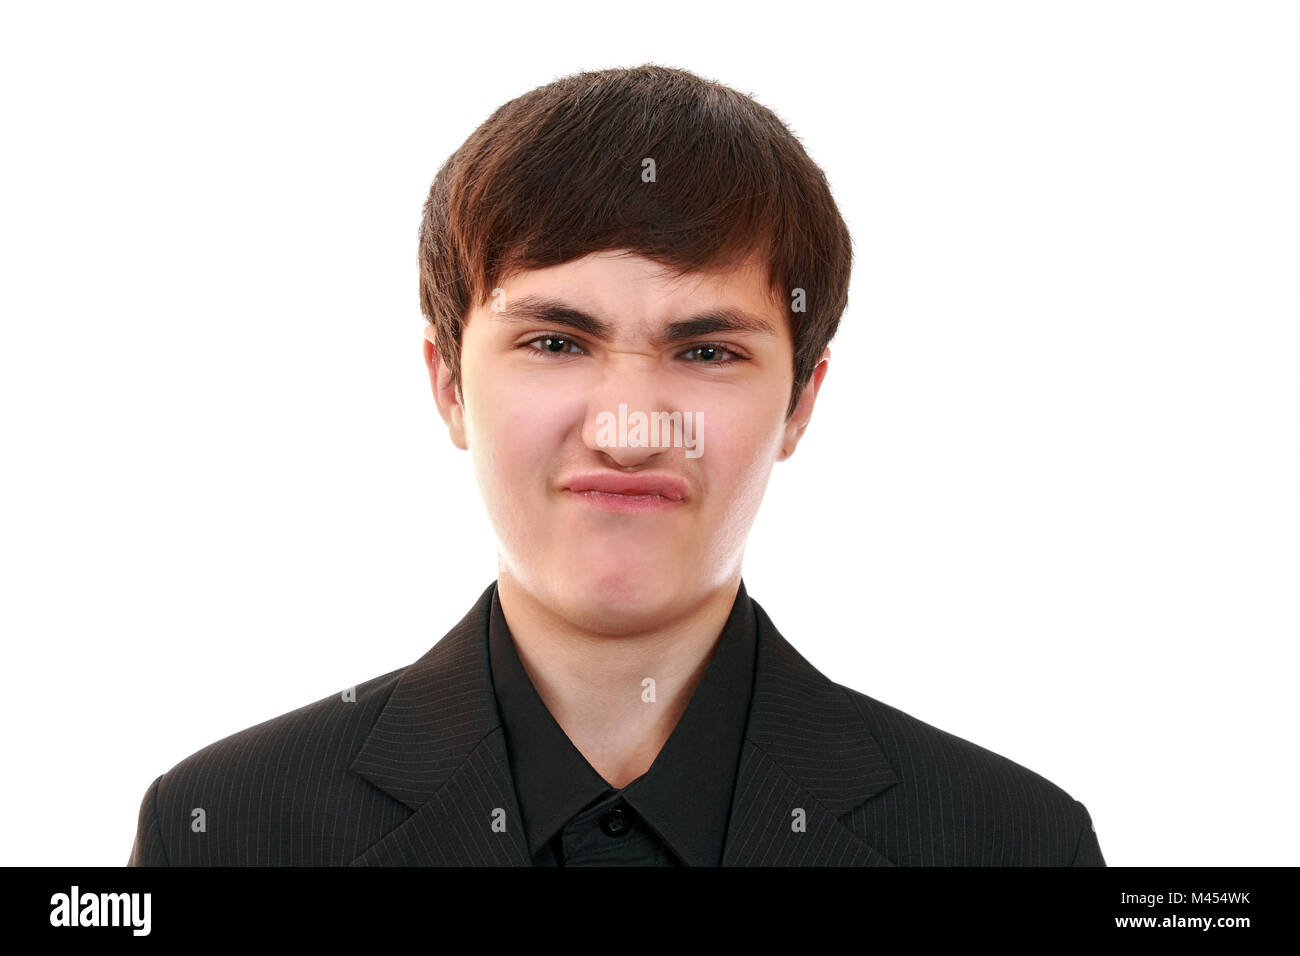 Grimaces the adolescent.Simulated dissatisfied, offended facial expression - Stock Image